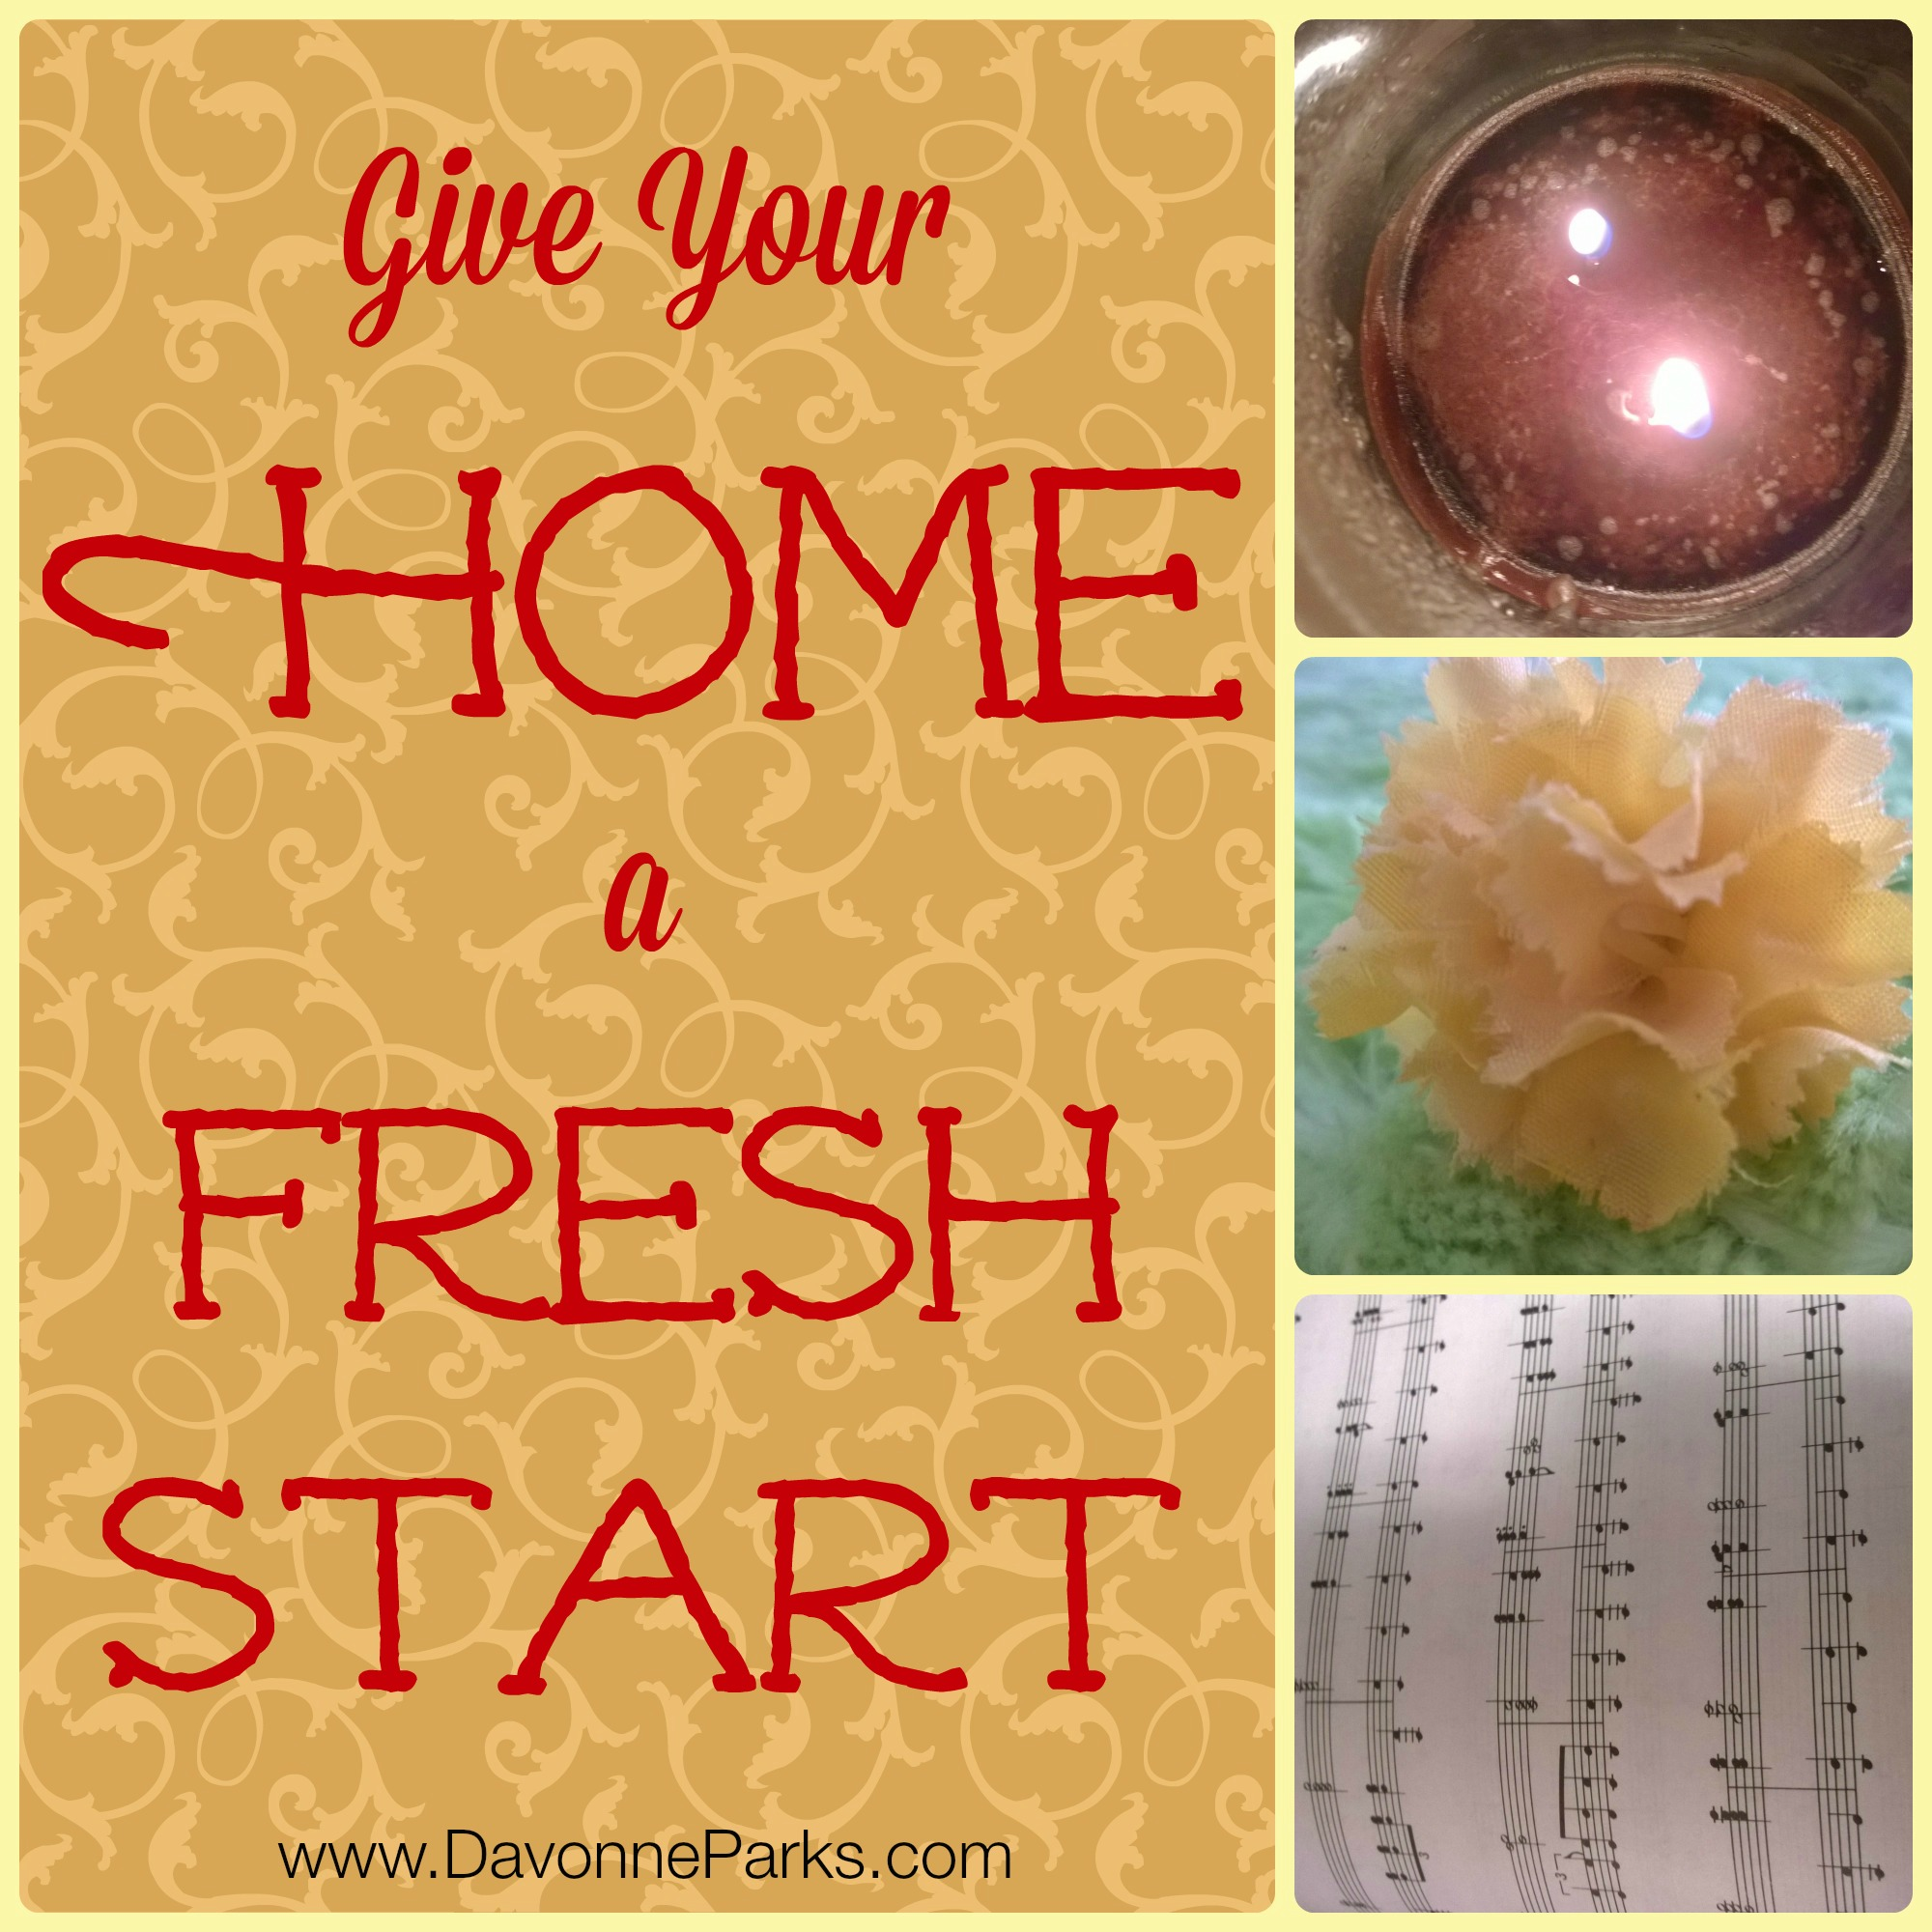 Give Your Home a Fresh Start